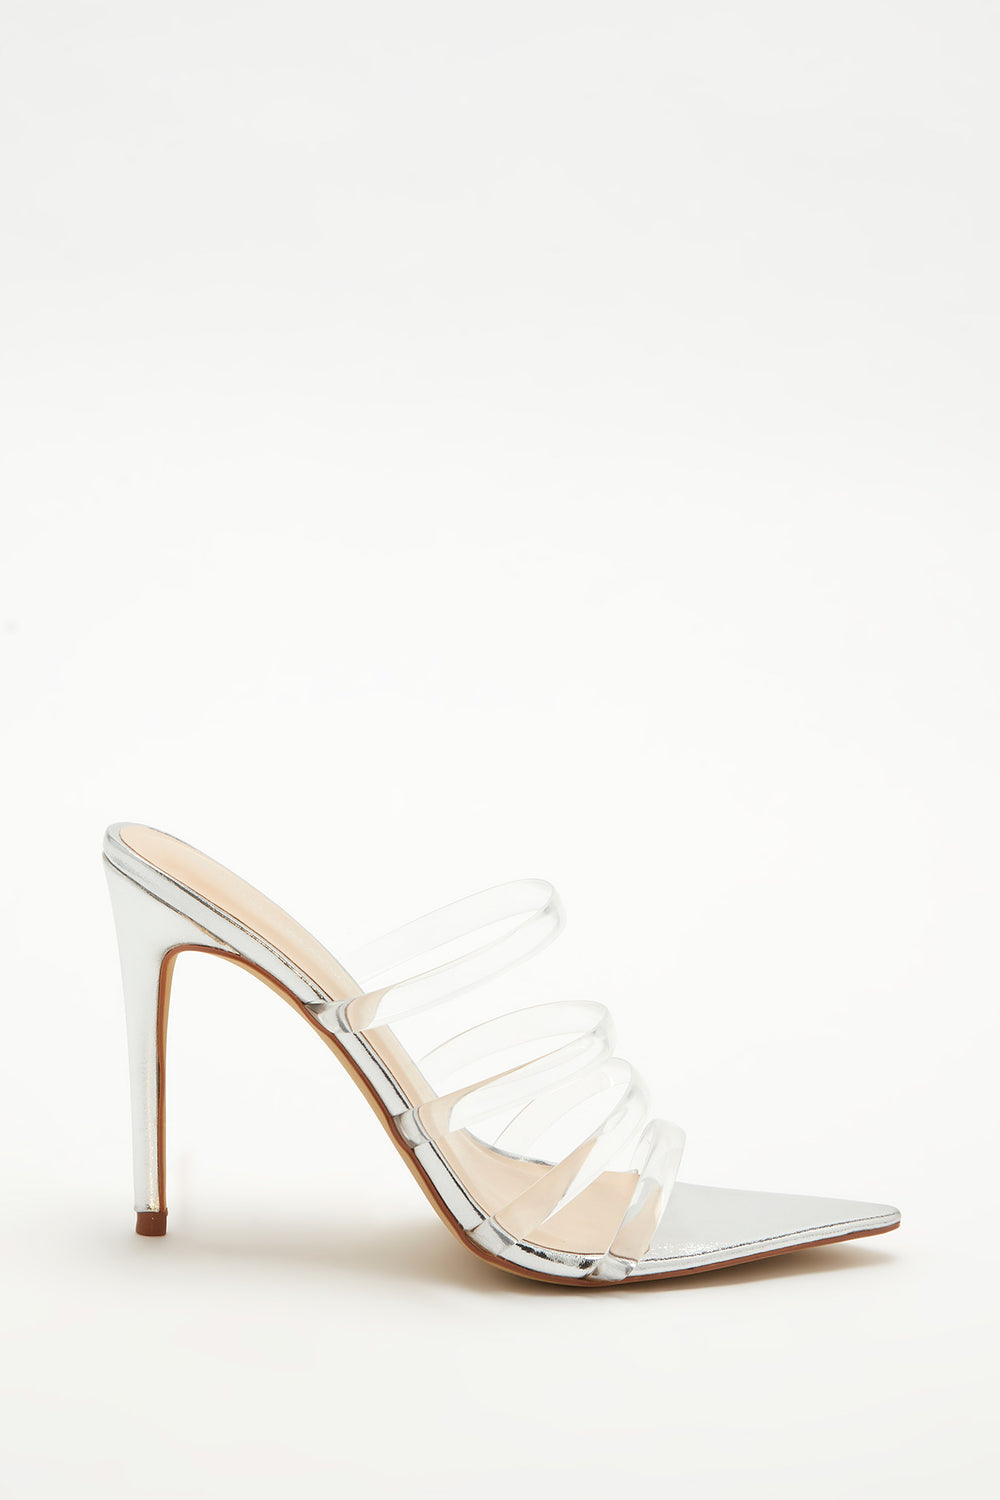 Clear Strappy Stiletto Pointed Mule Silver